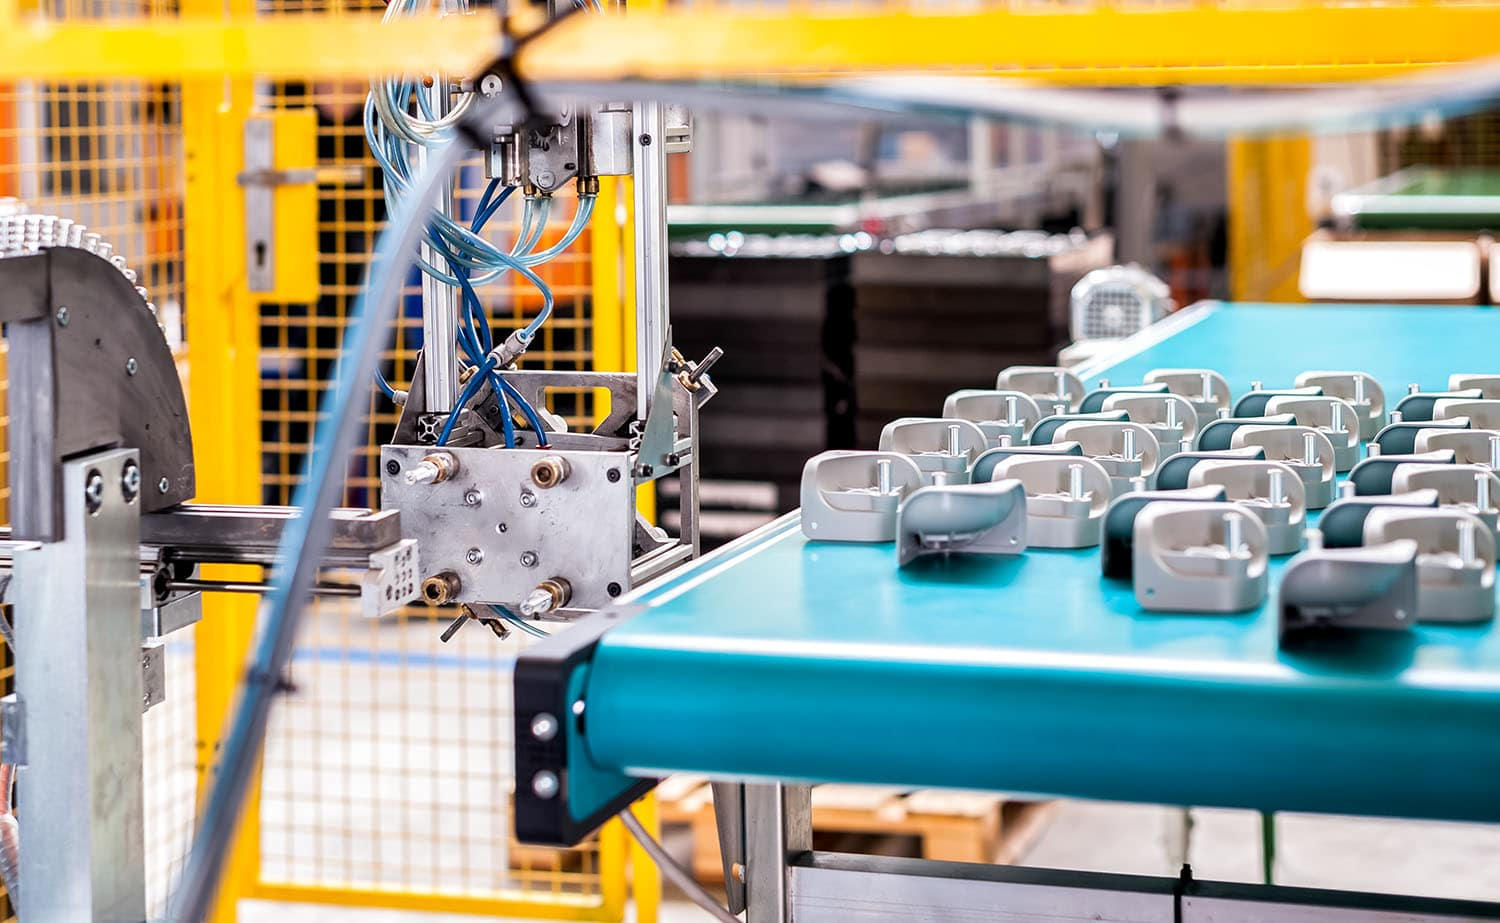 As specialists in complex assemblies and sub-assemblies of injected plastic parts, Intertell offers you component assembly services which is an essential complementary